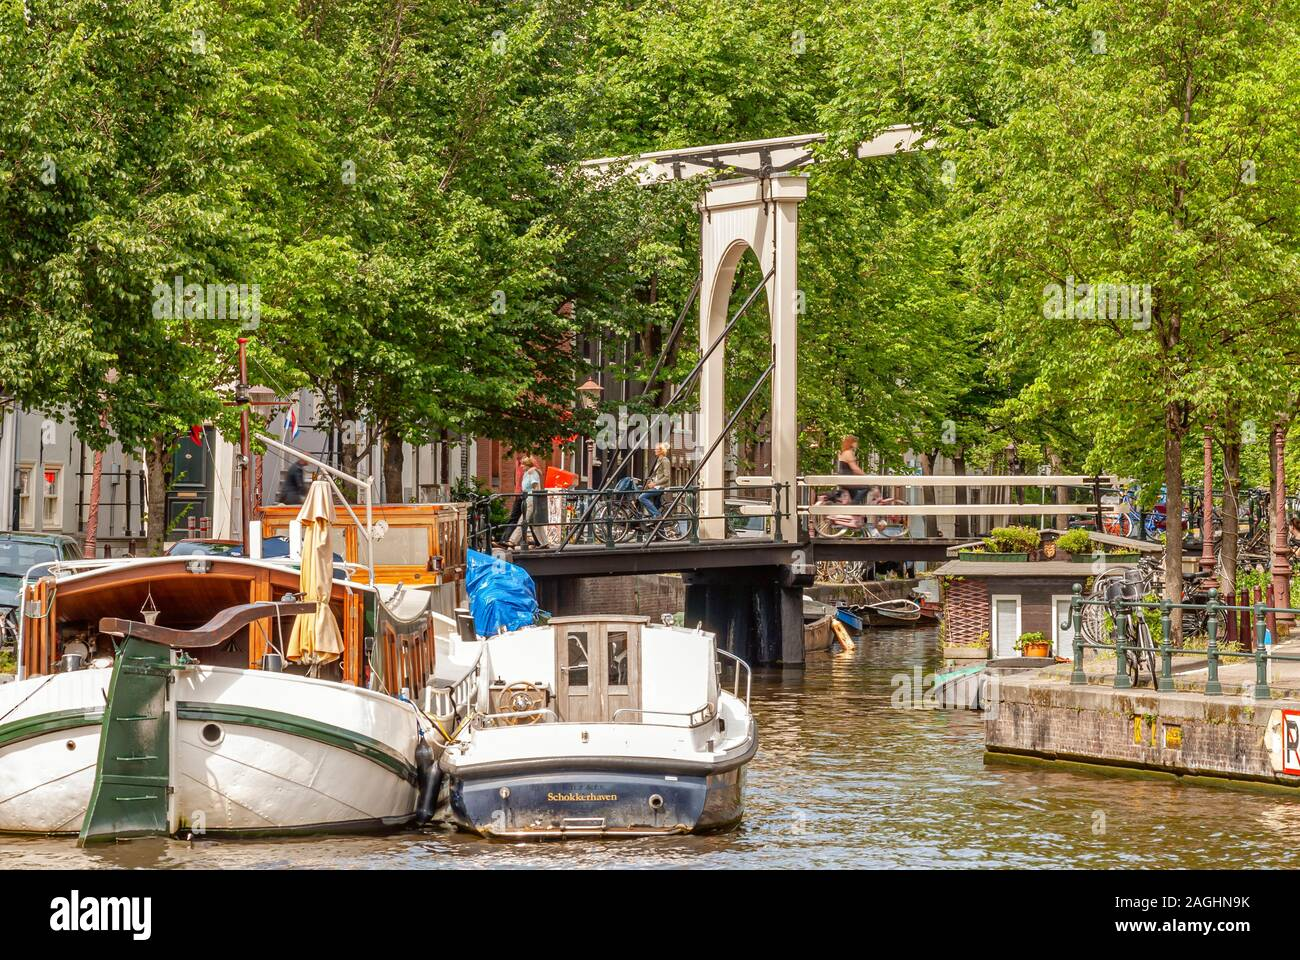 House boats in a water channel in the city center of Amsterdam, Netherlande Stock Photo